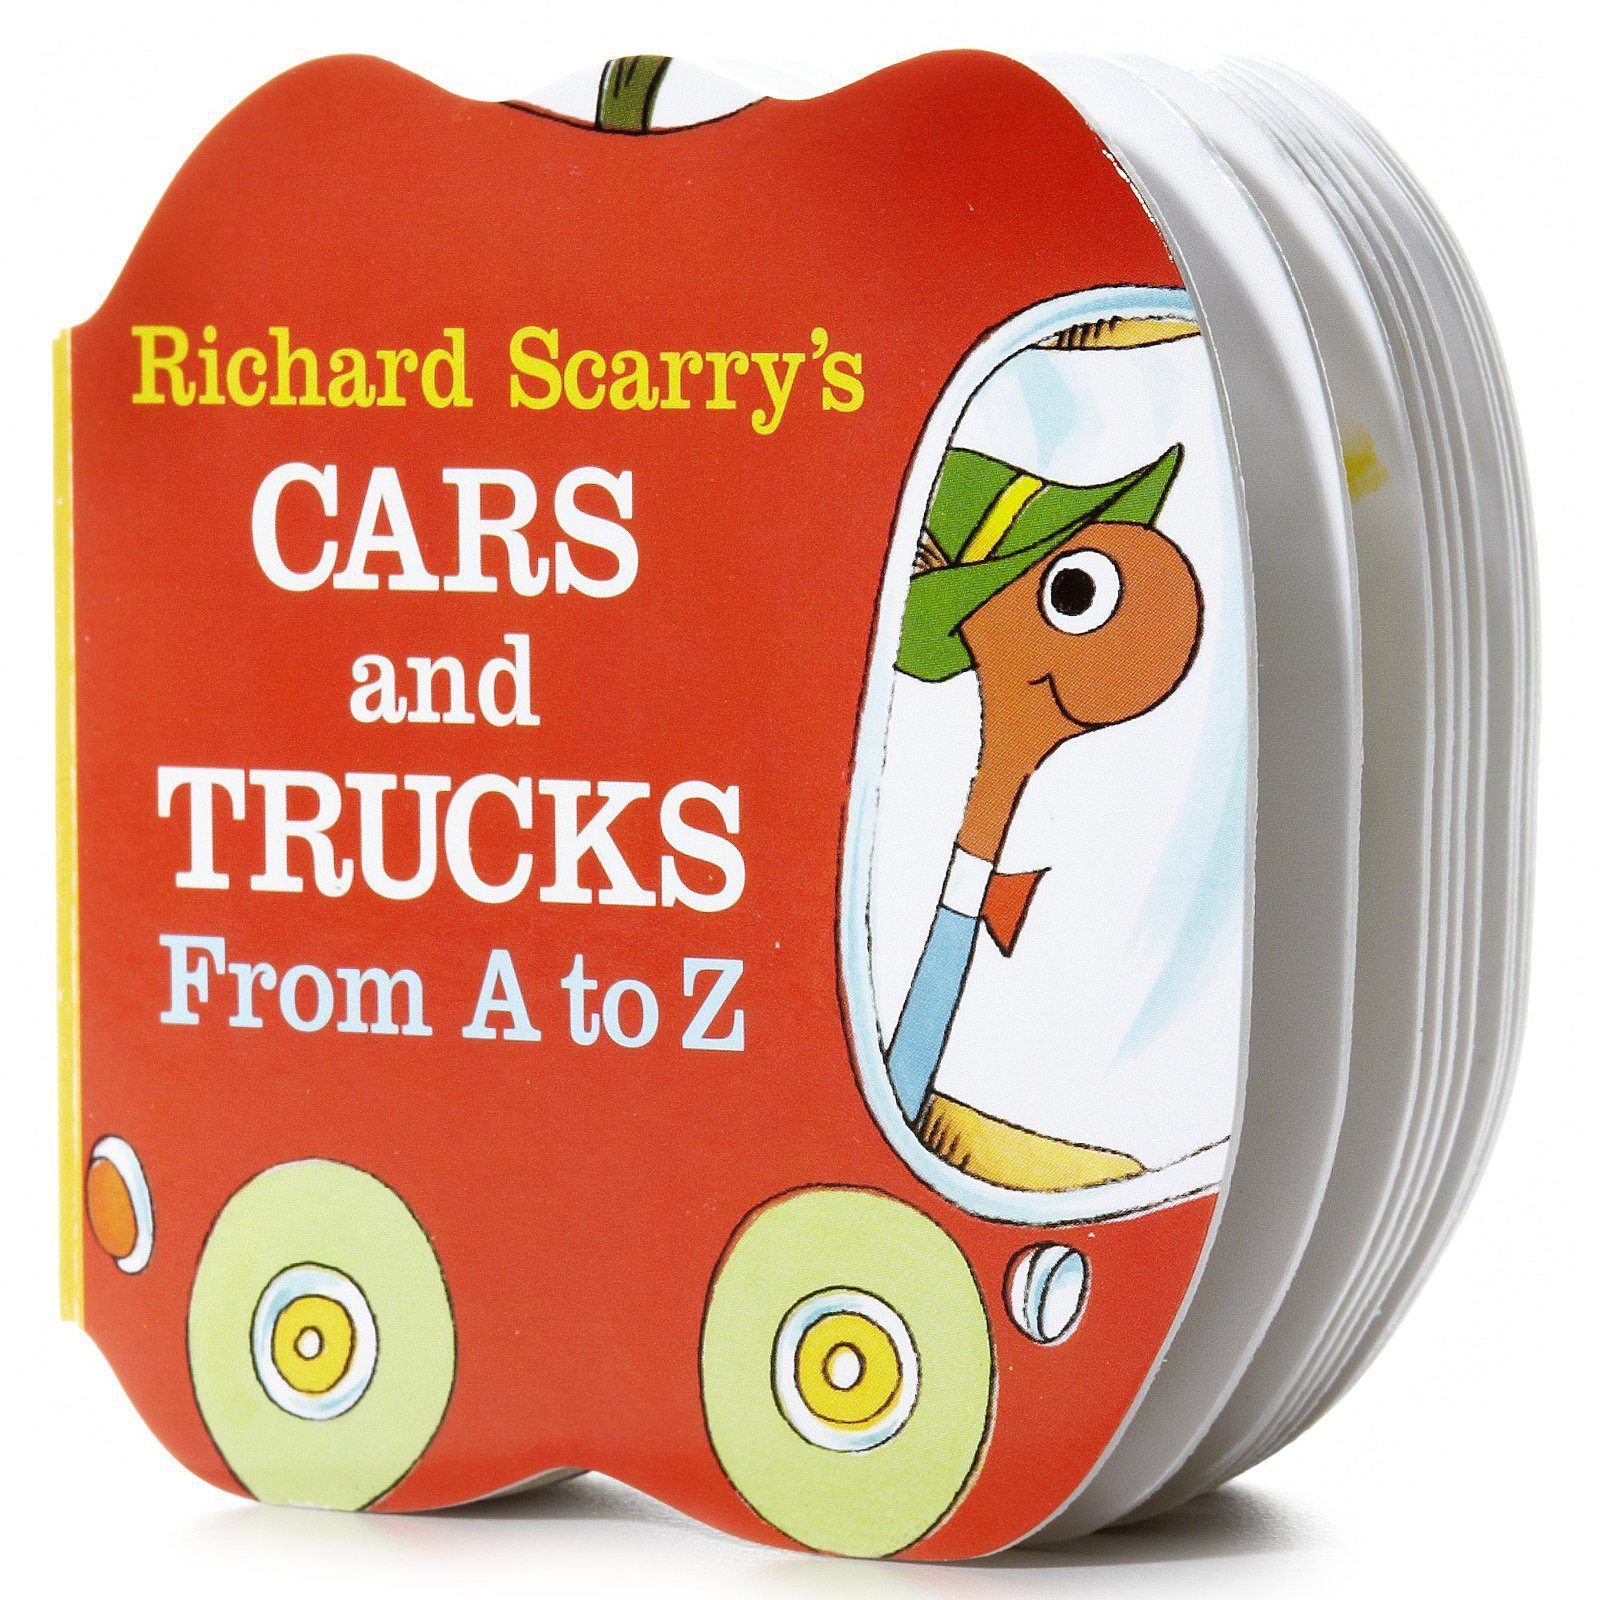 Richard Scarry's Cars and Trucks from A to Z 1